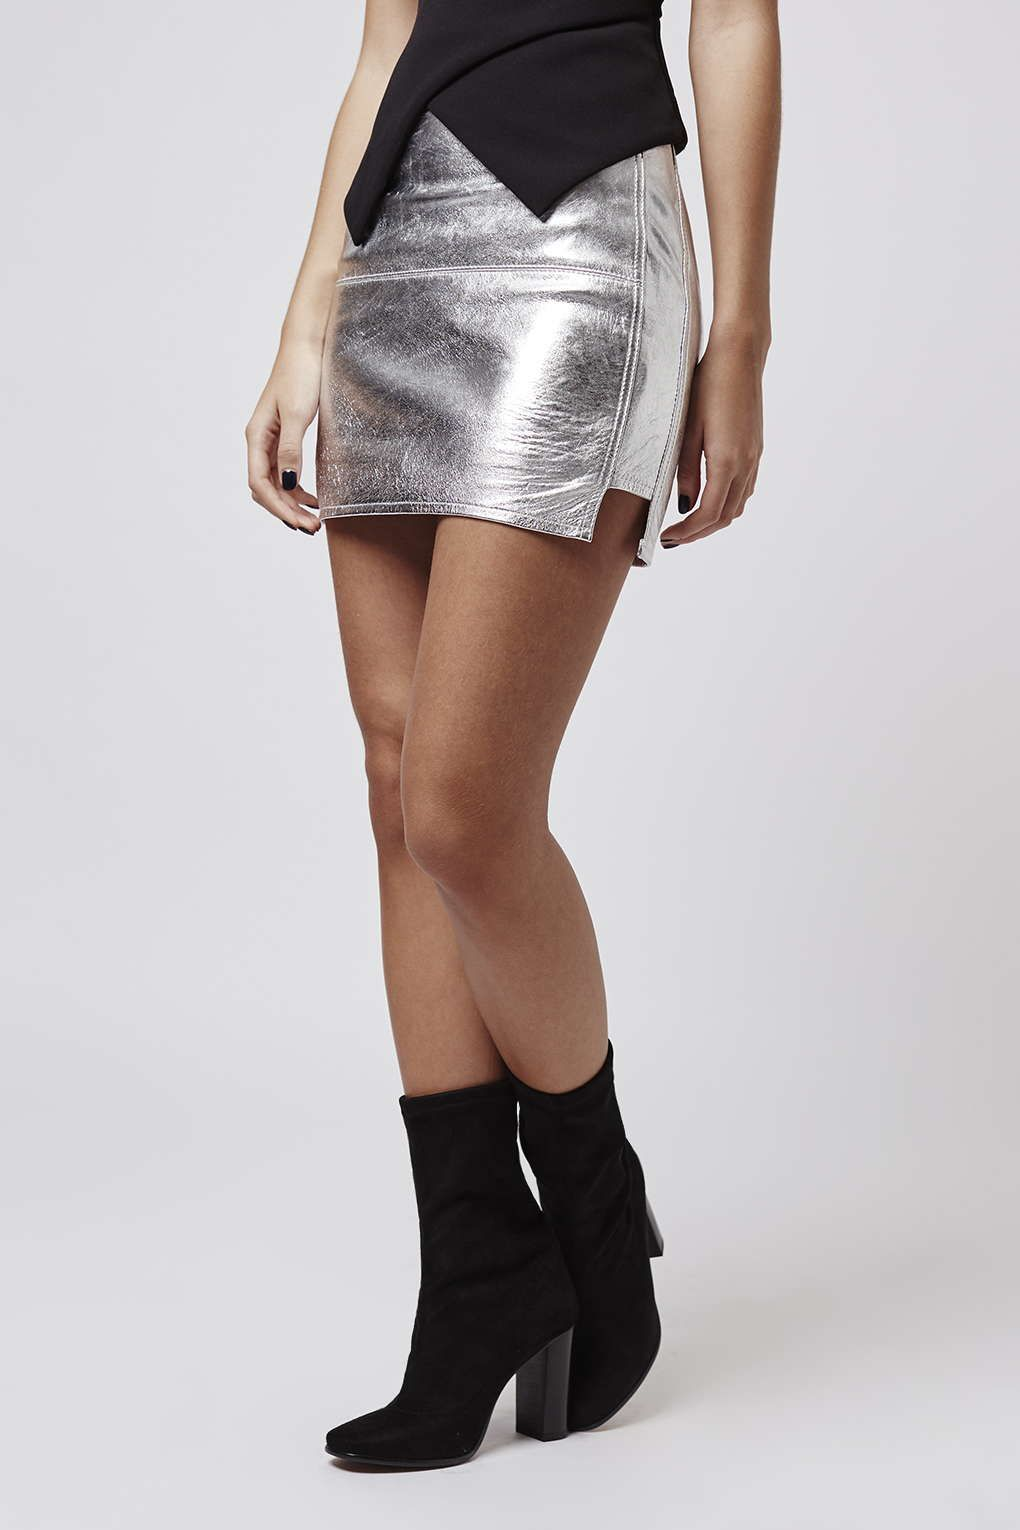 71c69cac63 This silver leather mini skirt by Kendall and Kylie for Topshop will get  you party ready in an instant. #Topshop